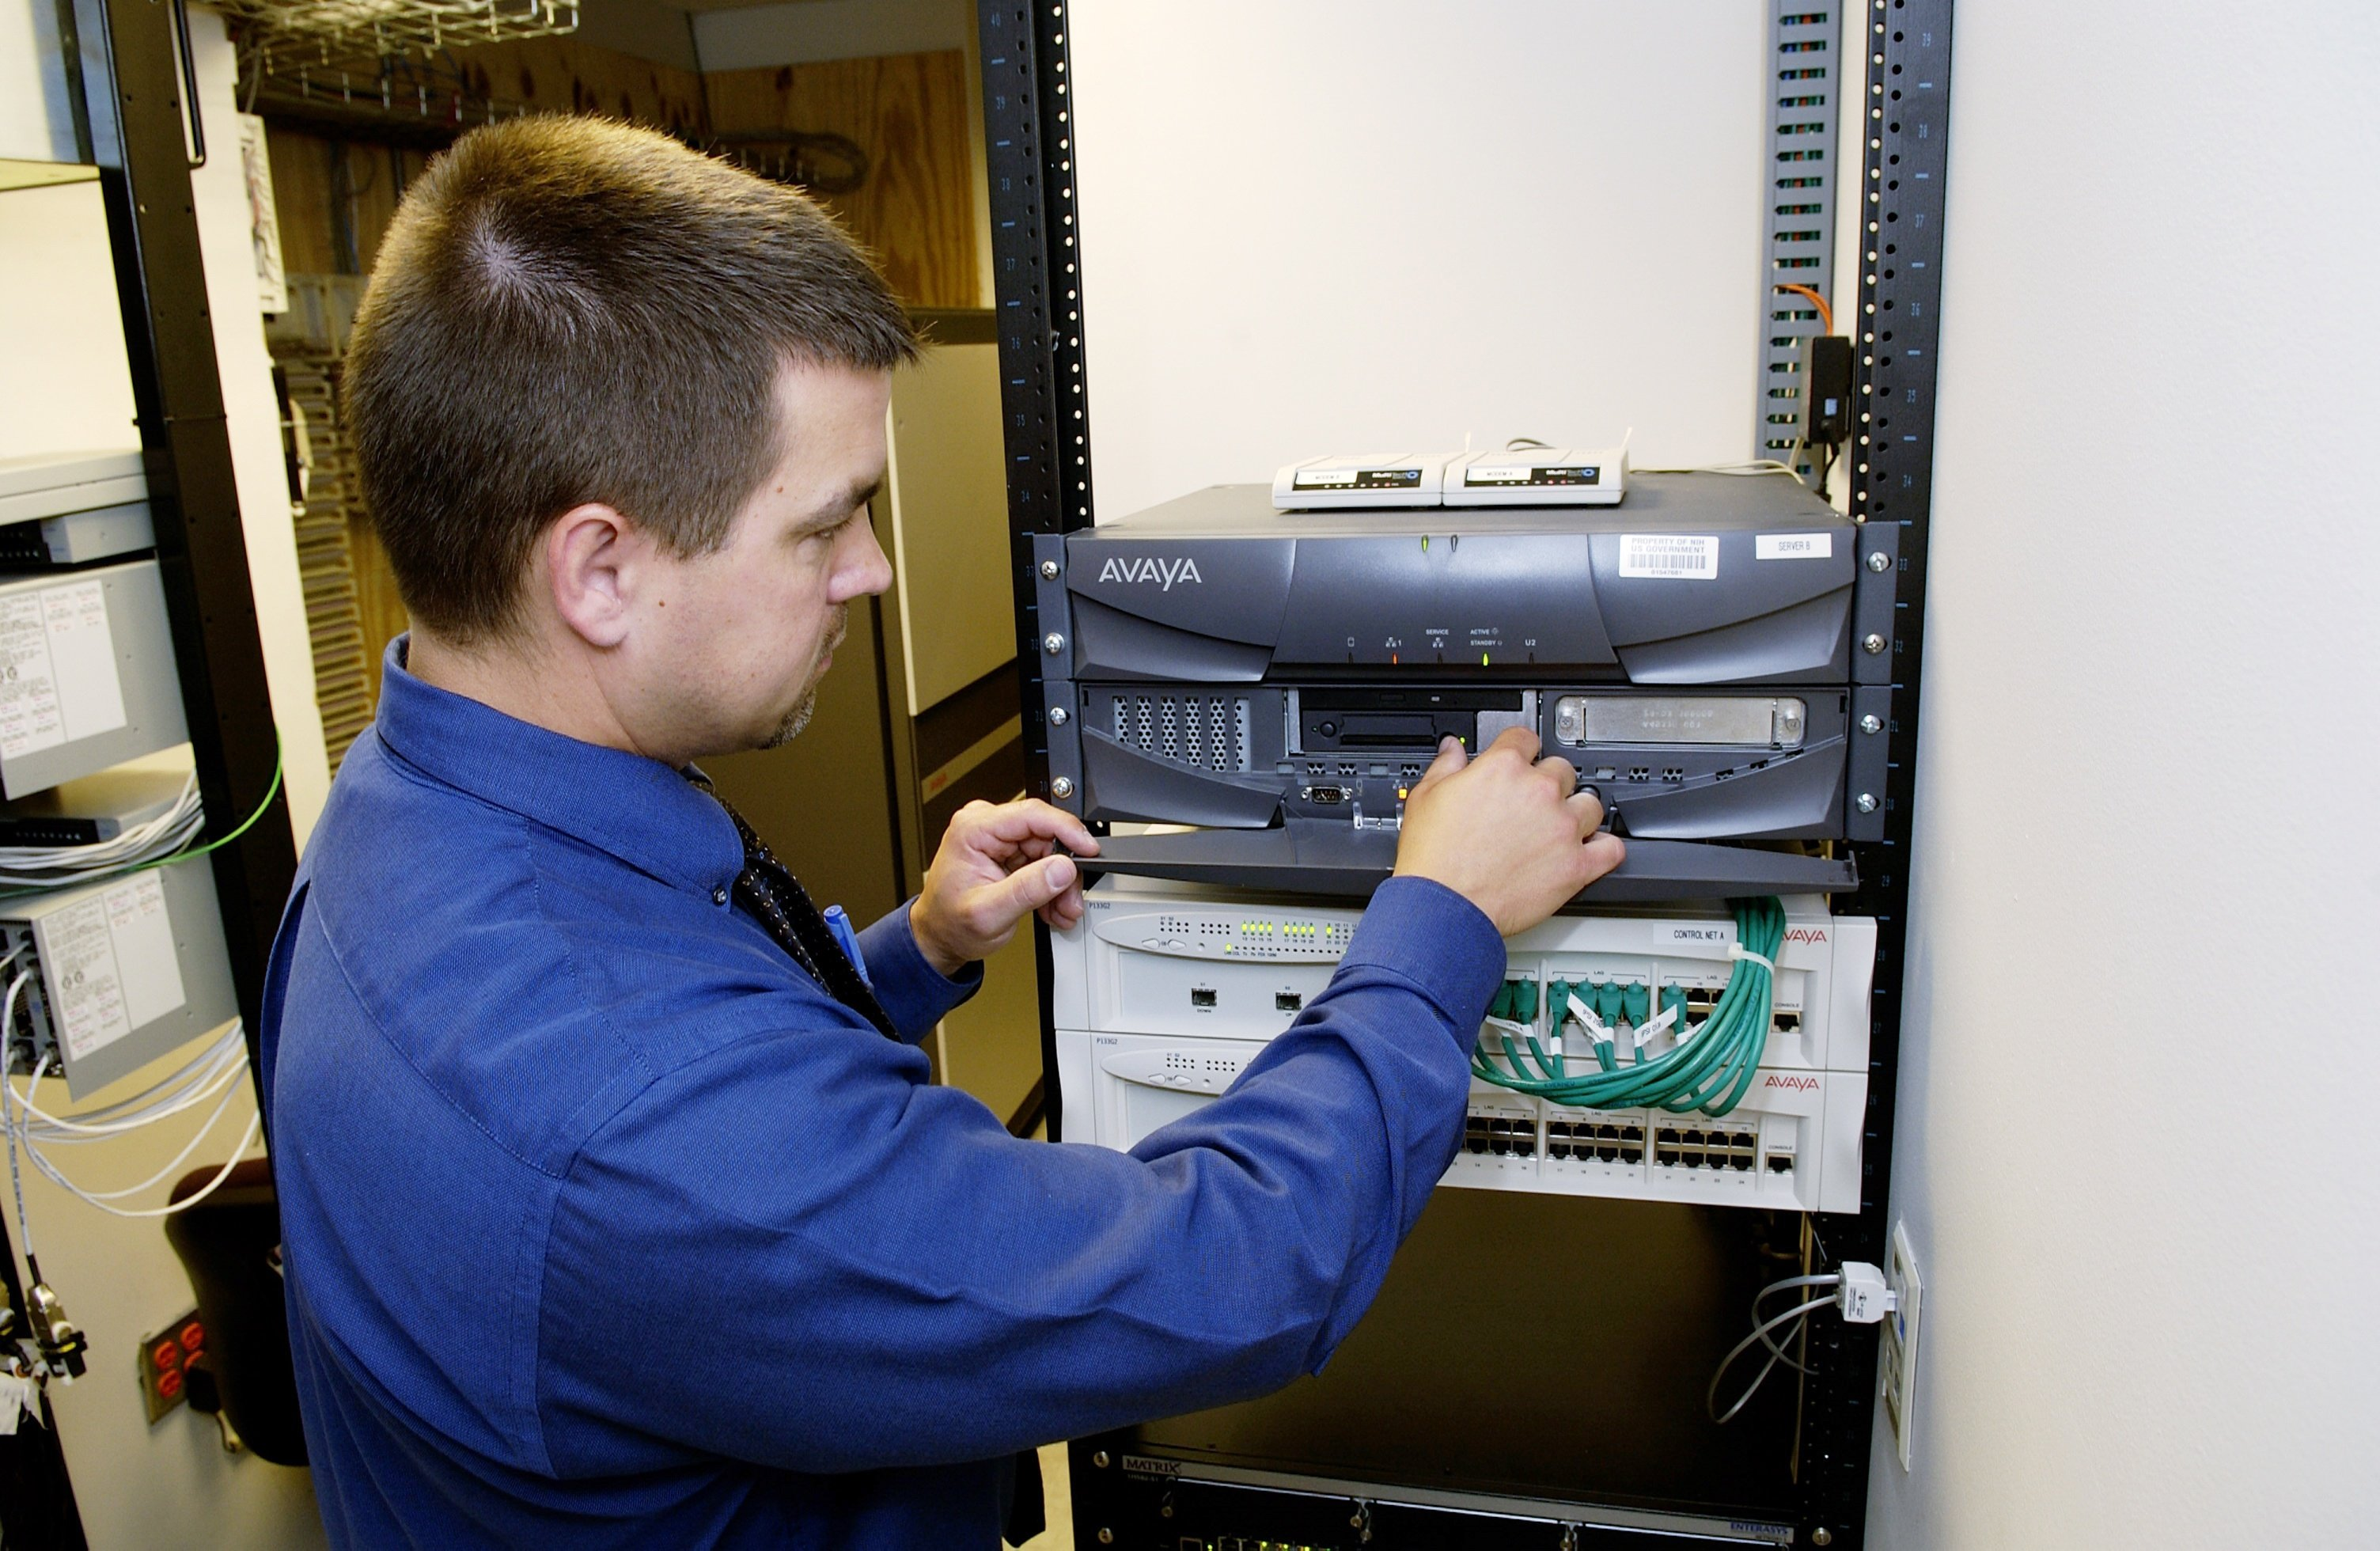 Network_server_and_technician